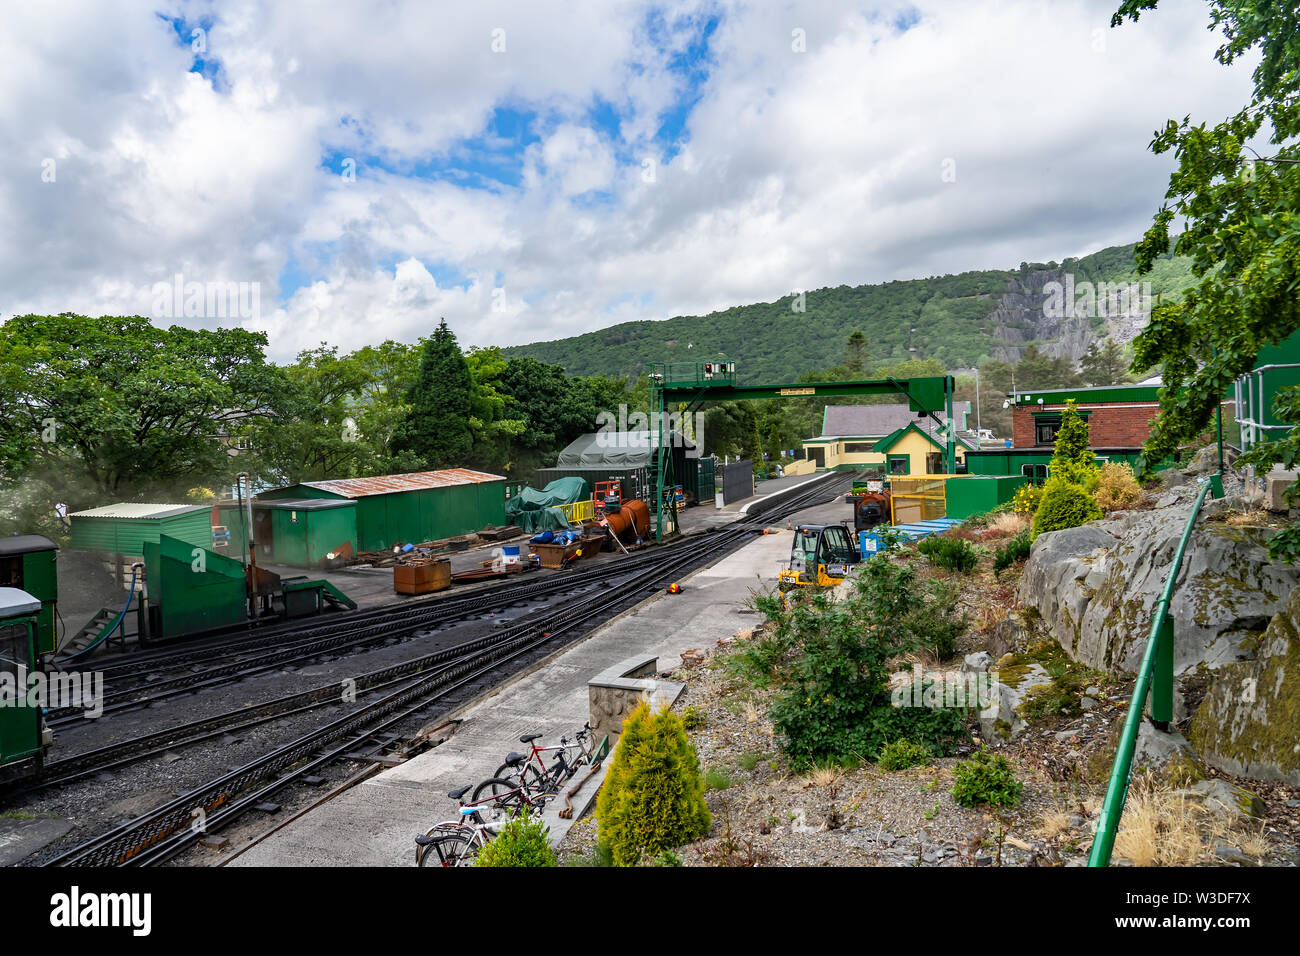 A view of the railway yard of Llanberis station on the Mount Snowdon Railway line - Stock Image